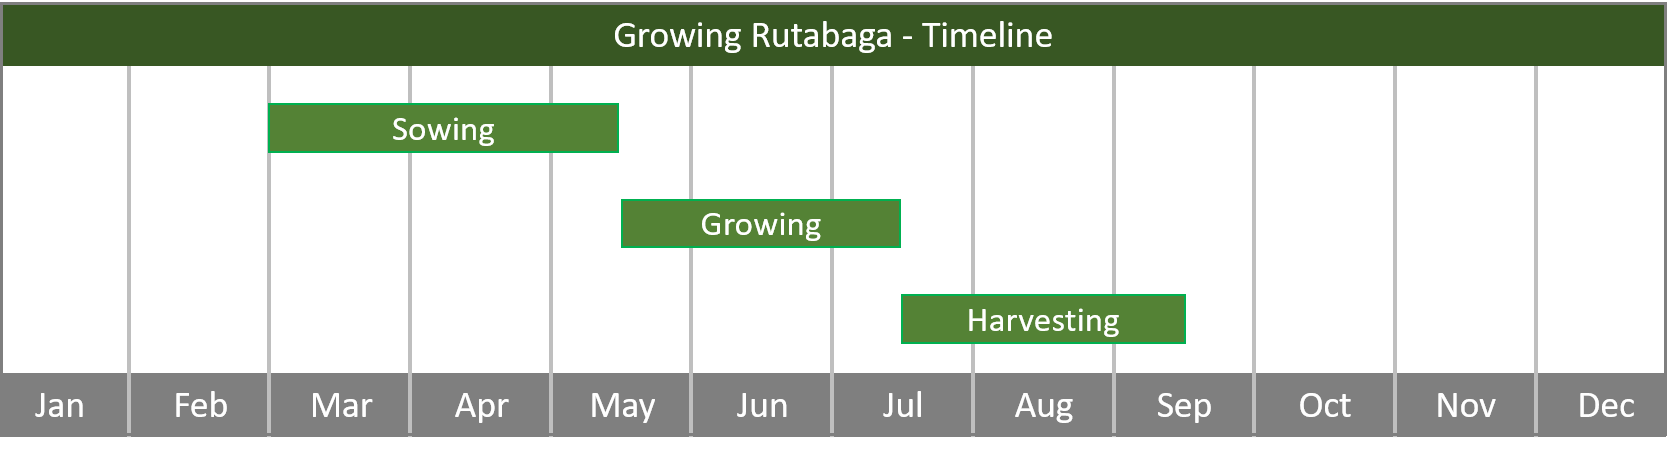 how to grow rutabaga from seed to harvest at home timeline